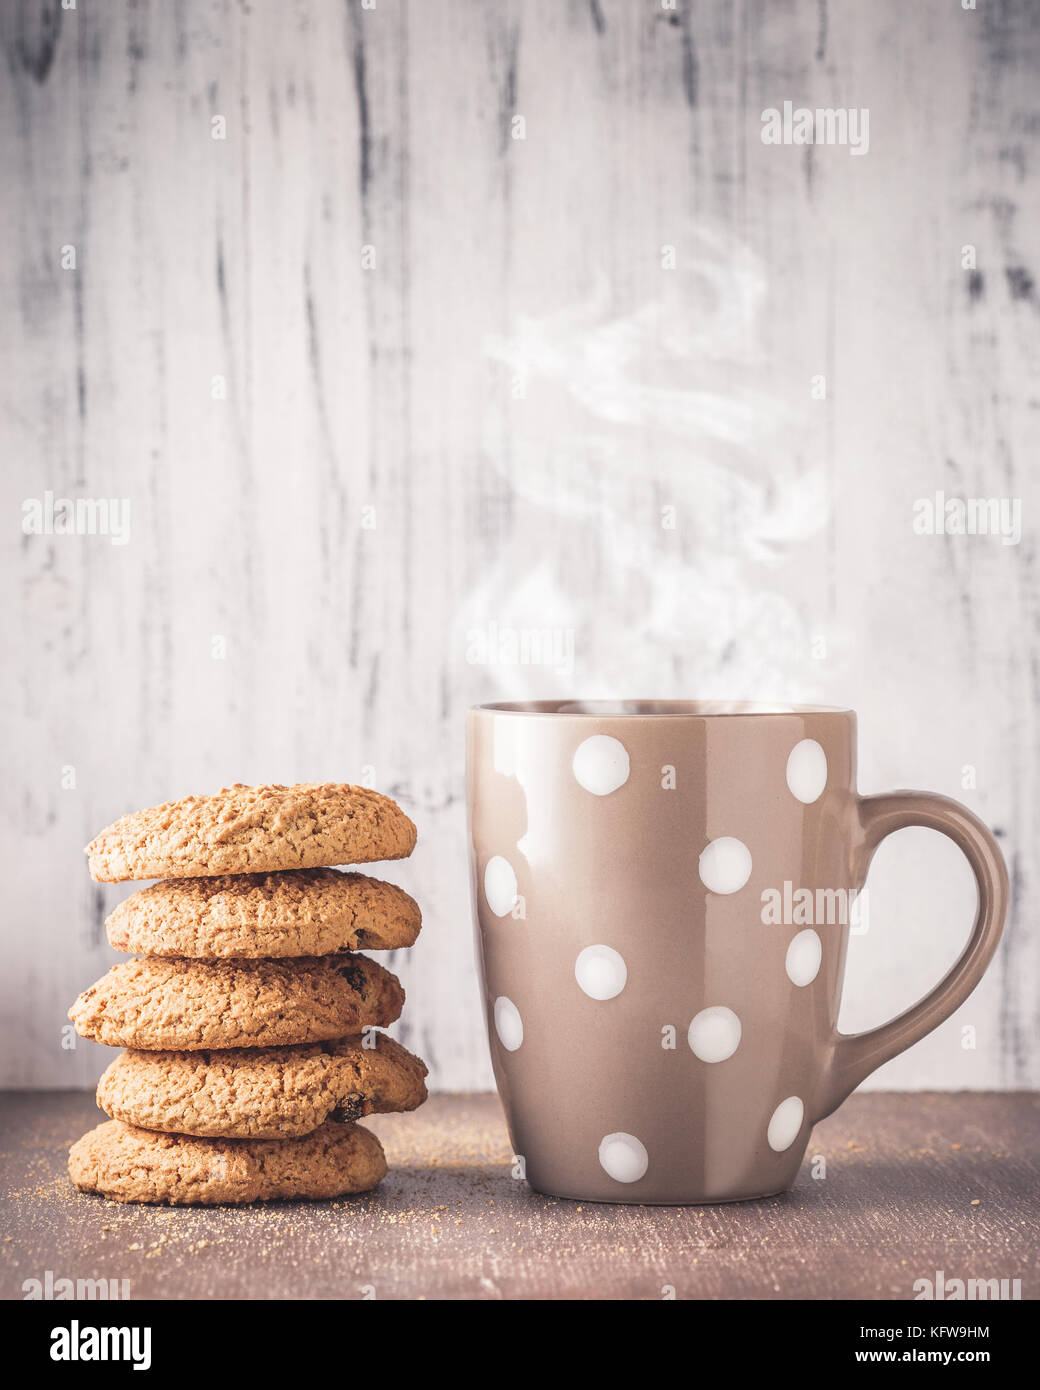 Stack of oat cookies and polka dot mug with hot drink over wooden background - Stock Image